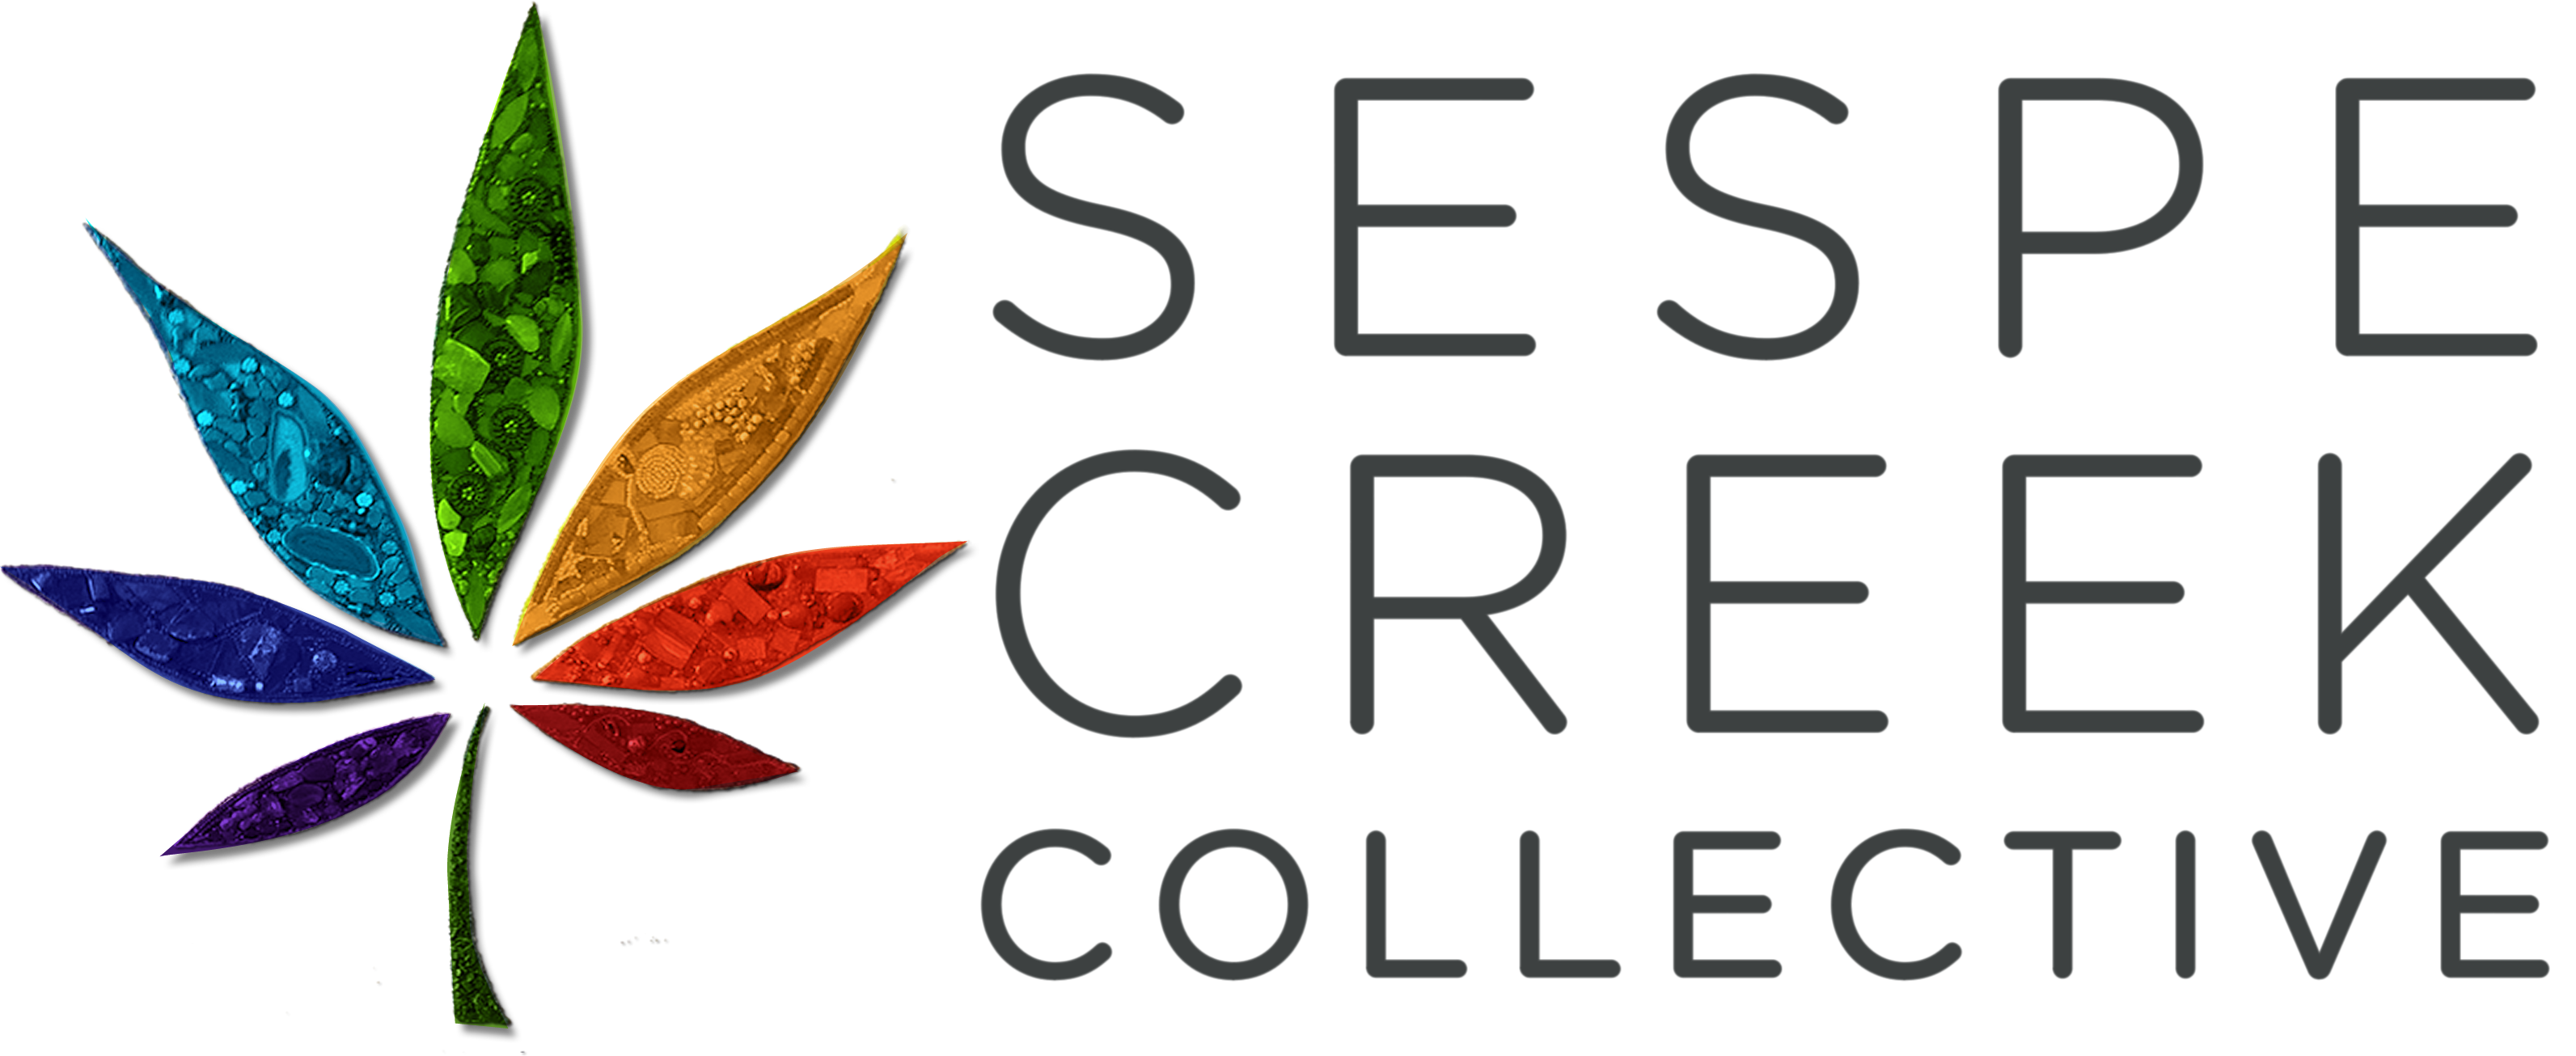 Seep Creek Collective